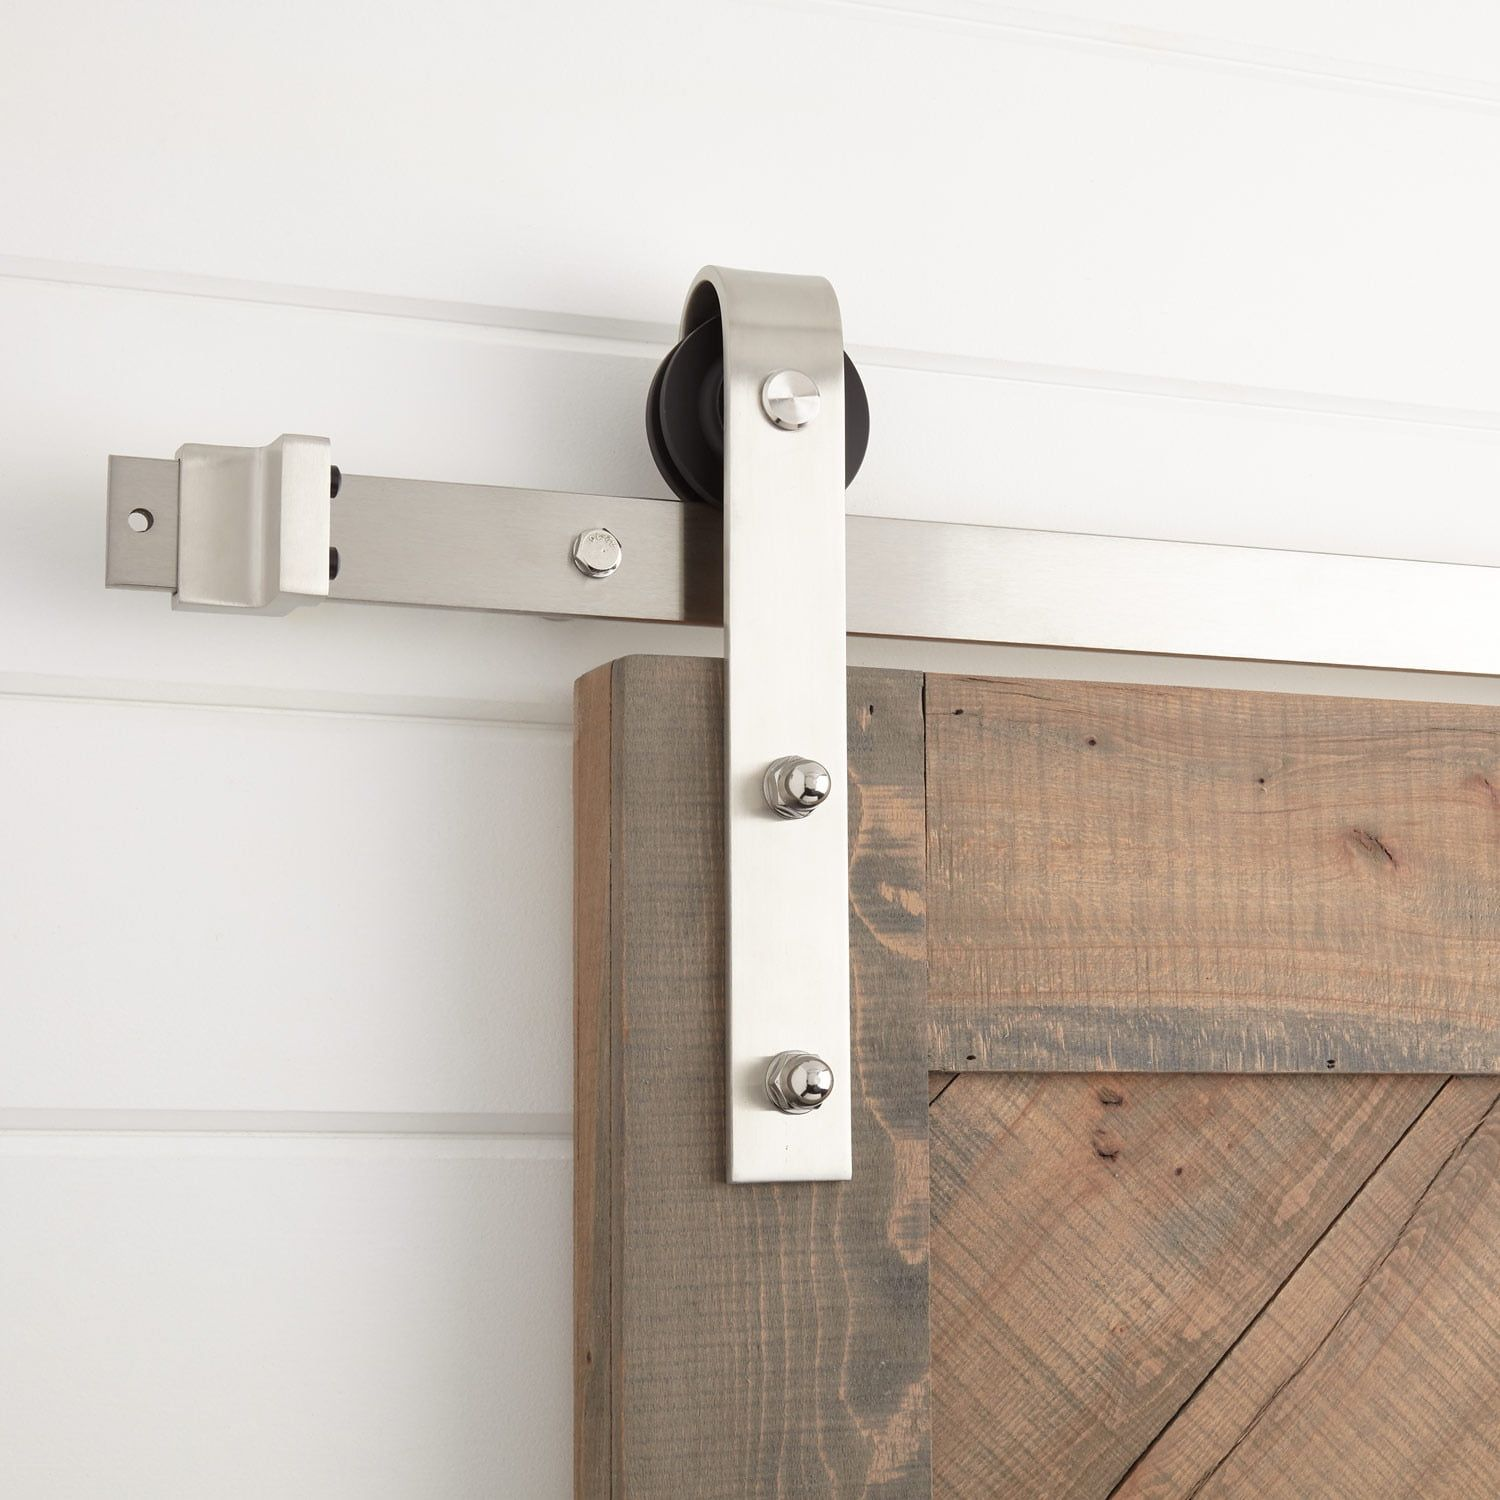 The Hal Barn Door Hardware Has A Timeless Look That Works For A Variety Of Decor Styles Made Of Stainless Steel Th Barn Door Hardware Barn Door Door Hardware